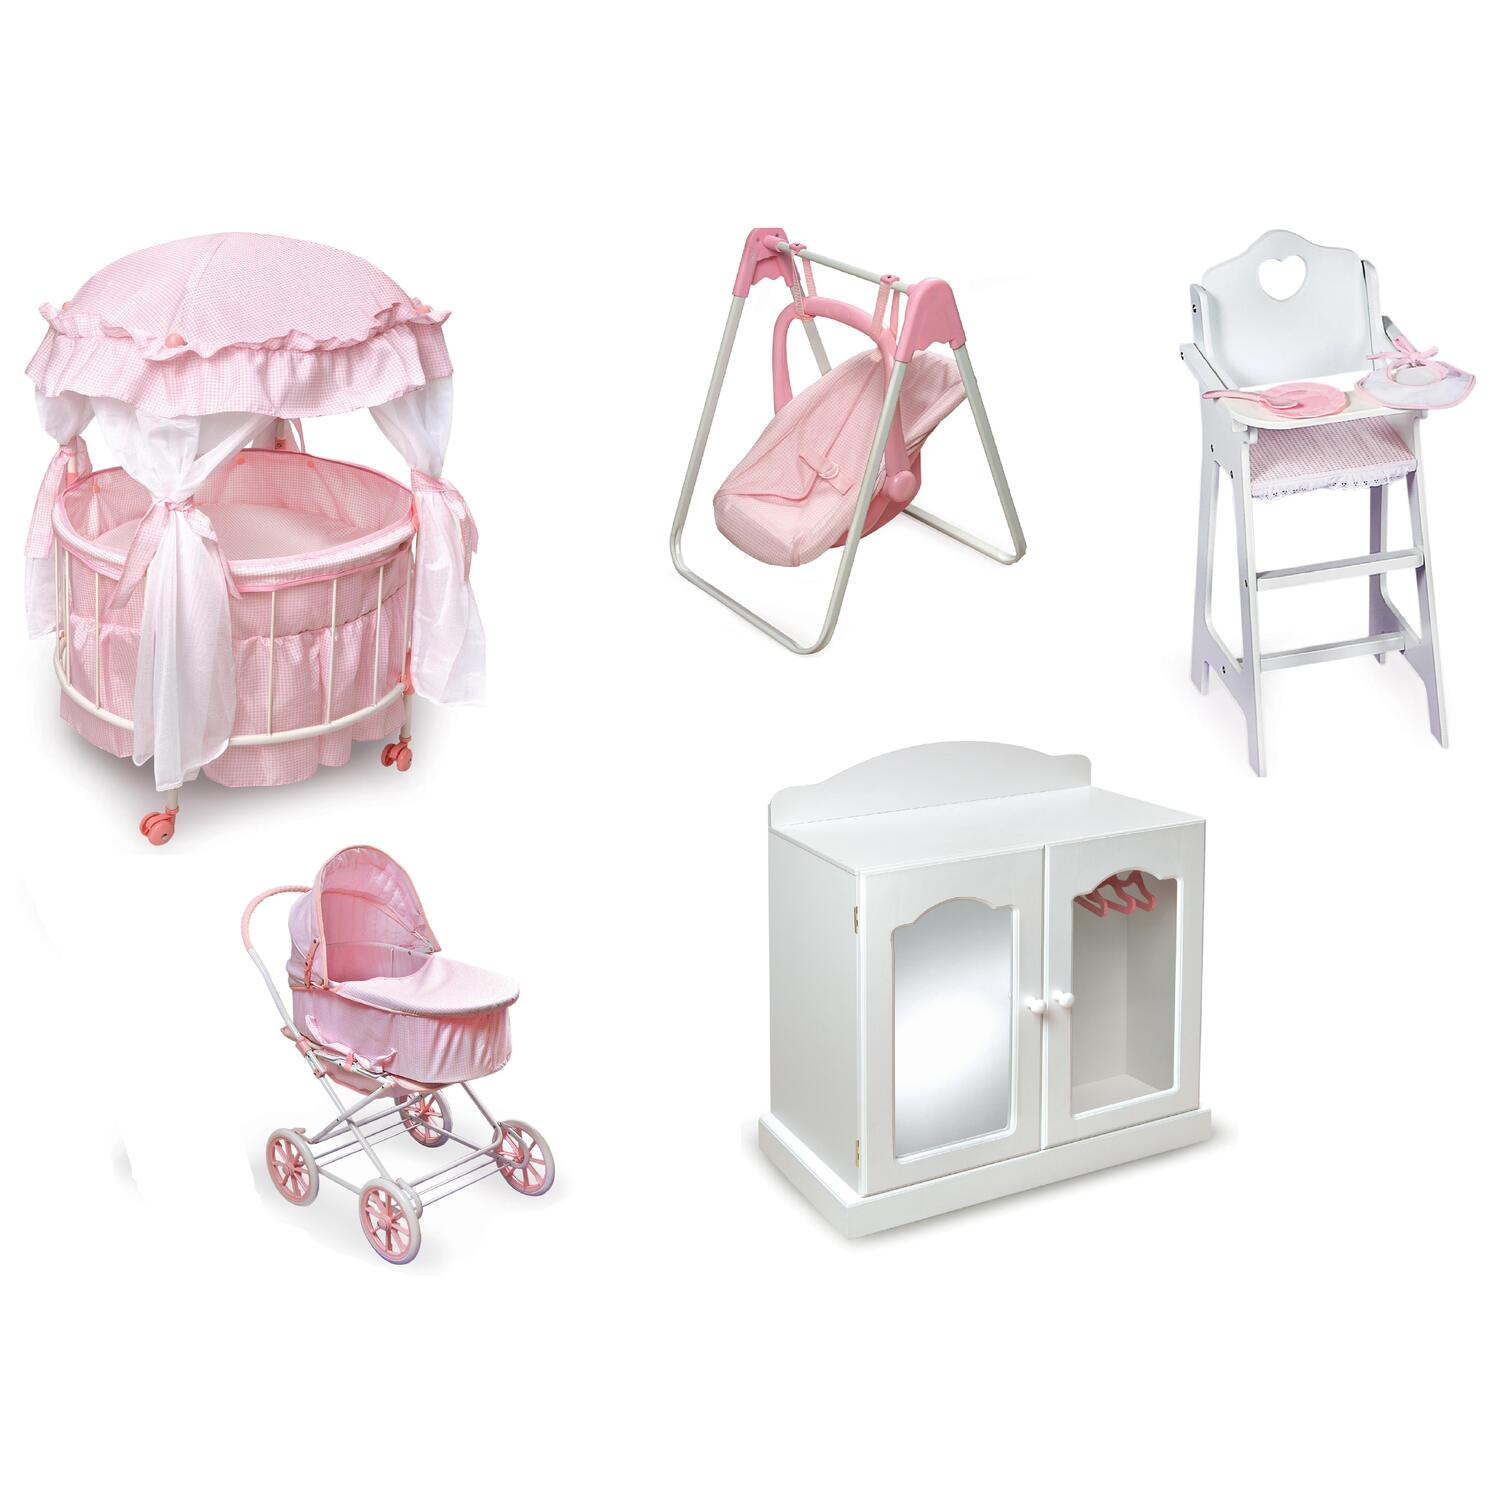 badger basket doll high chair desk covers deluxe set by oj commerce 17900deluxe